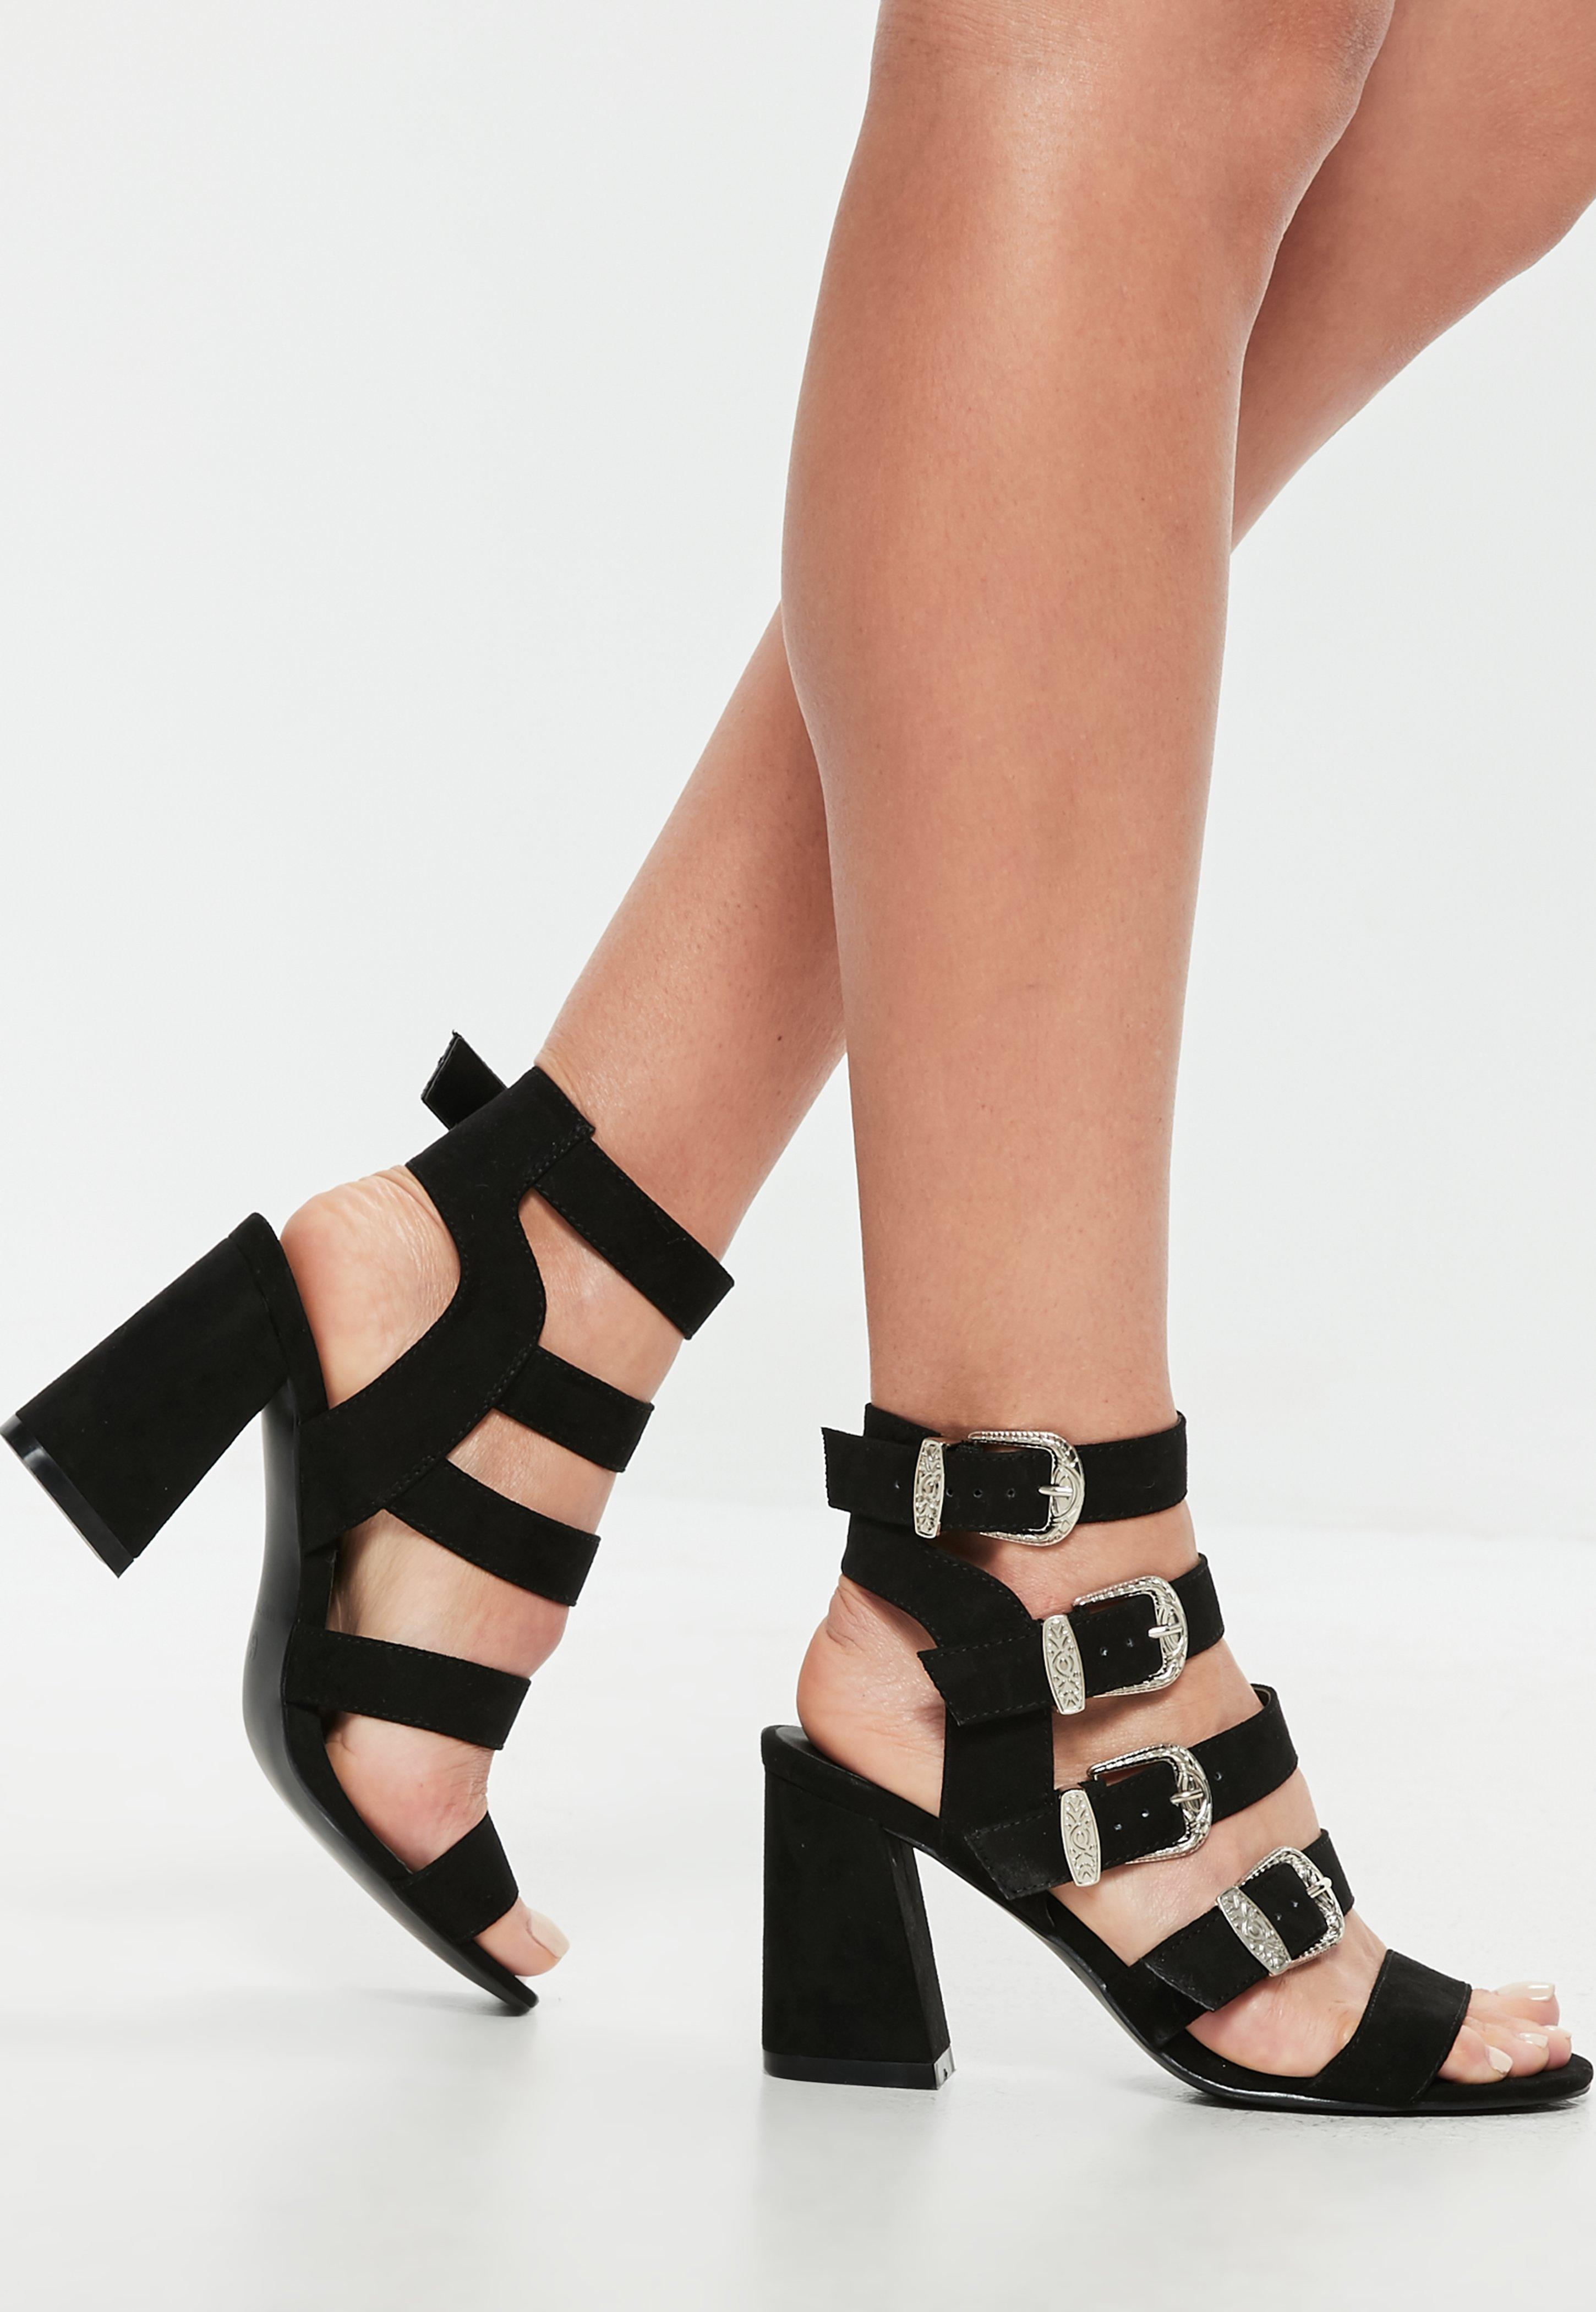 block heeled sandals Discount Outlet Locations Recommend Cheap Inexpensive Discount Finishline jK9v611